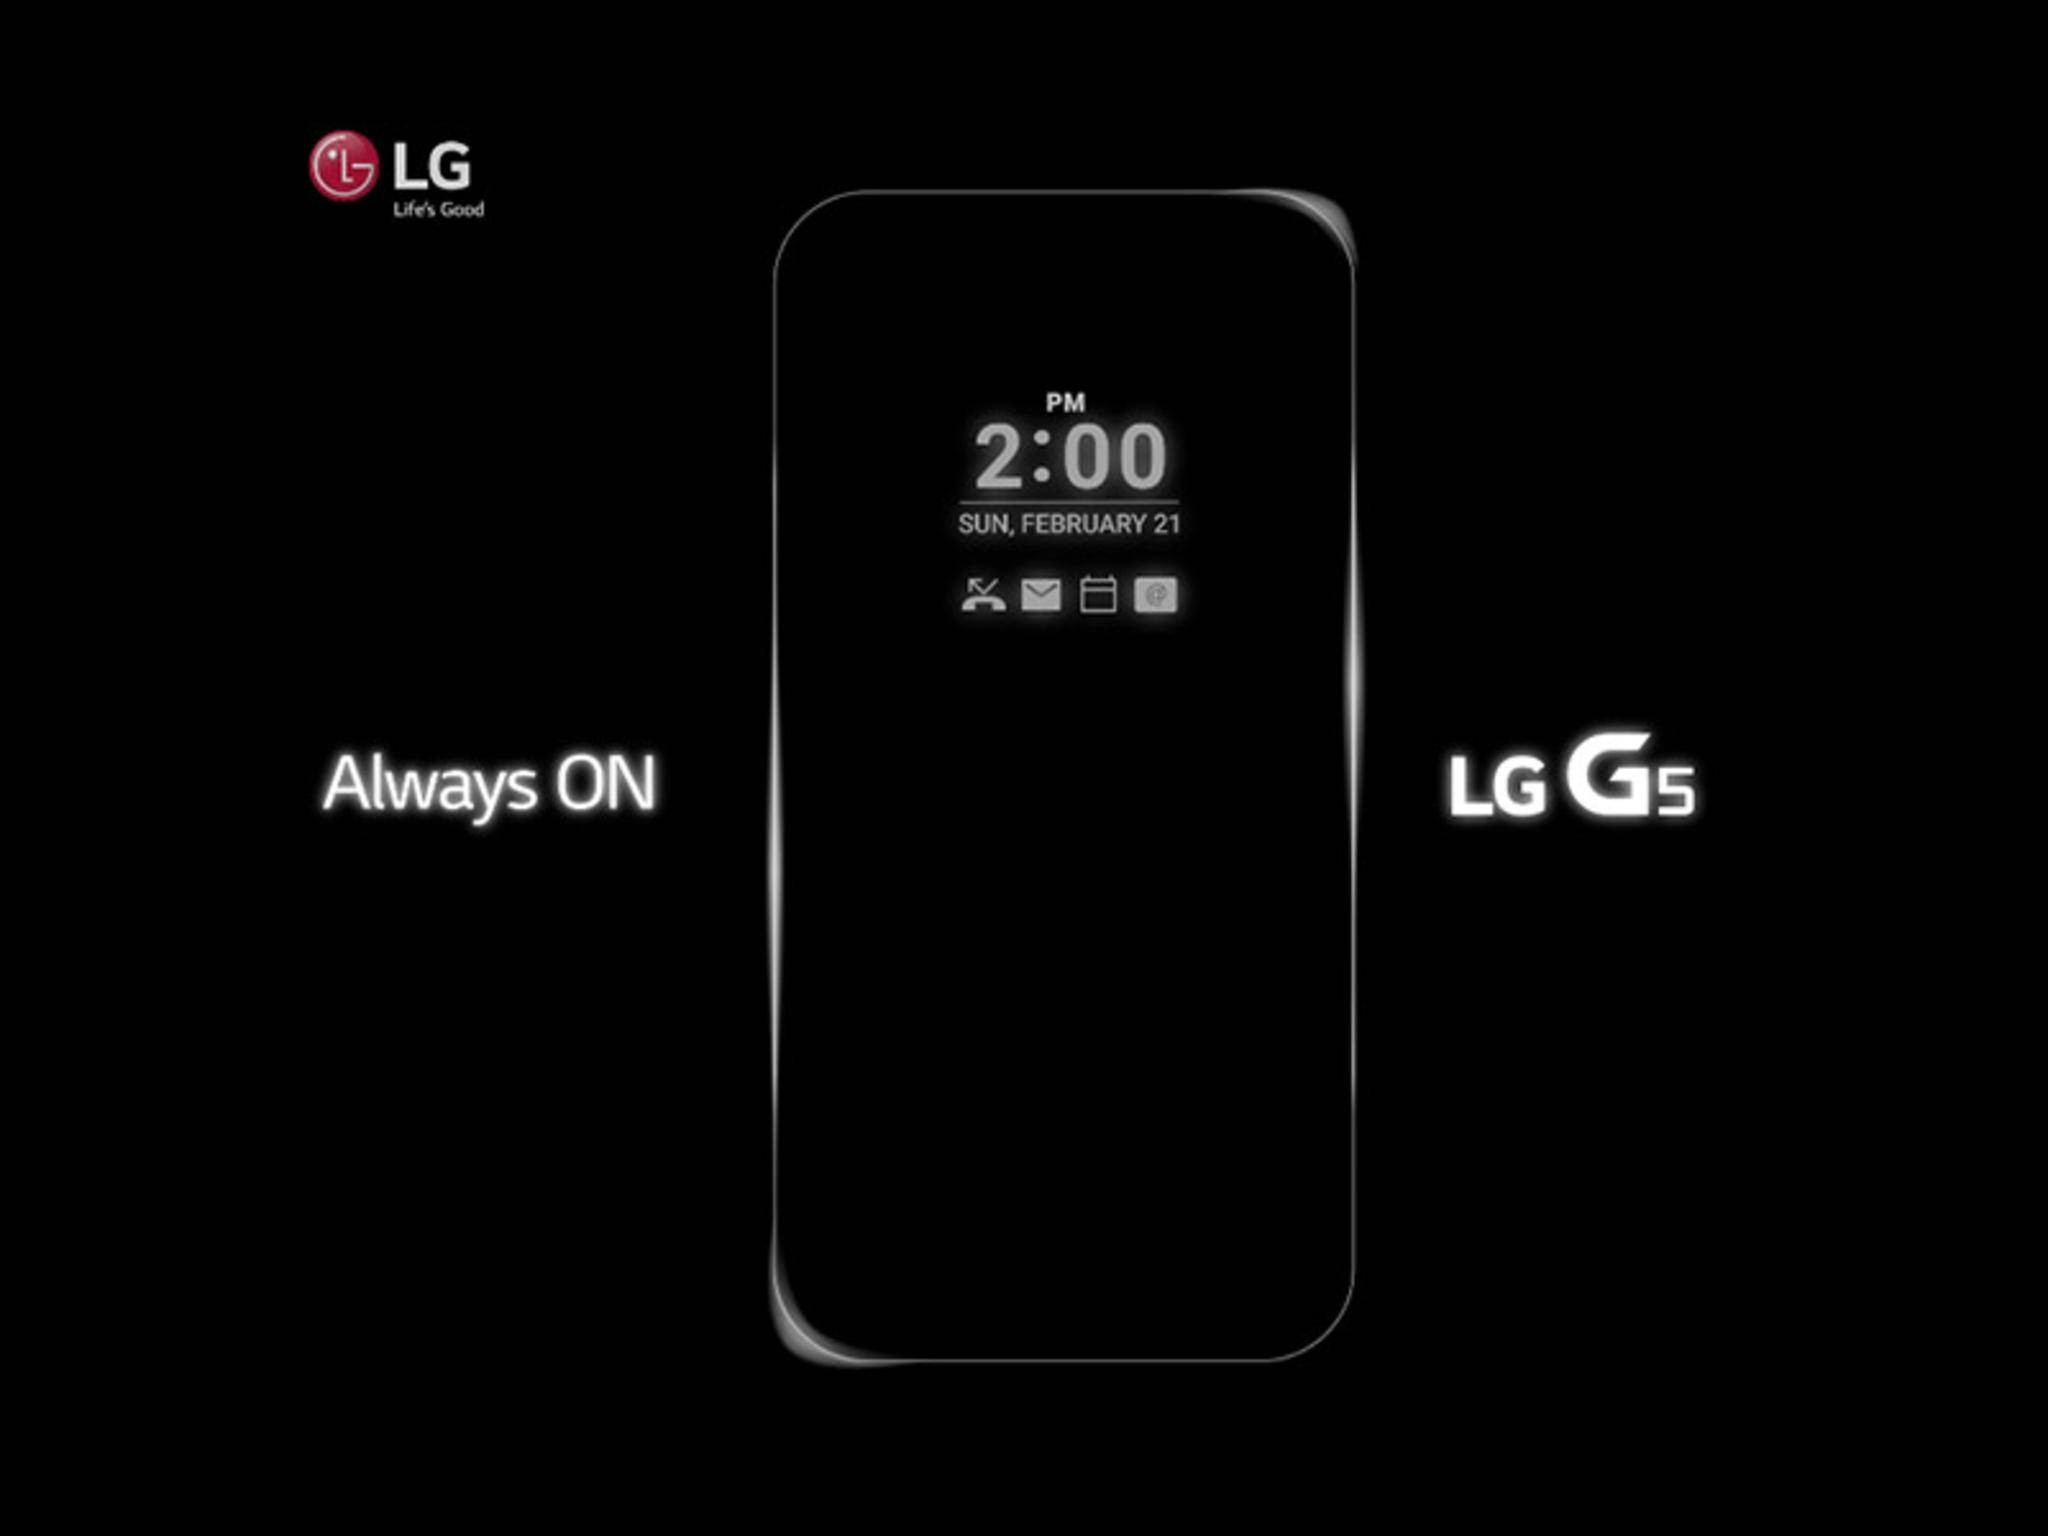 Das LG G5 besitzt ein Always-On-Display.